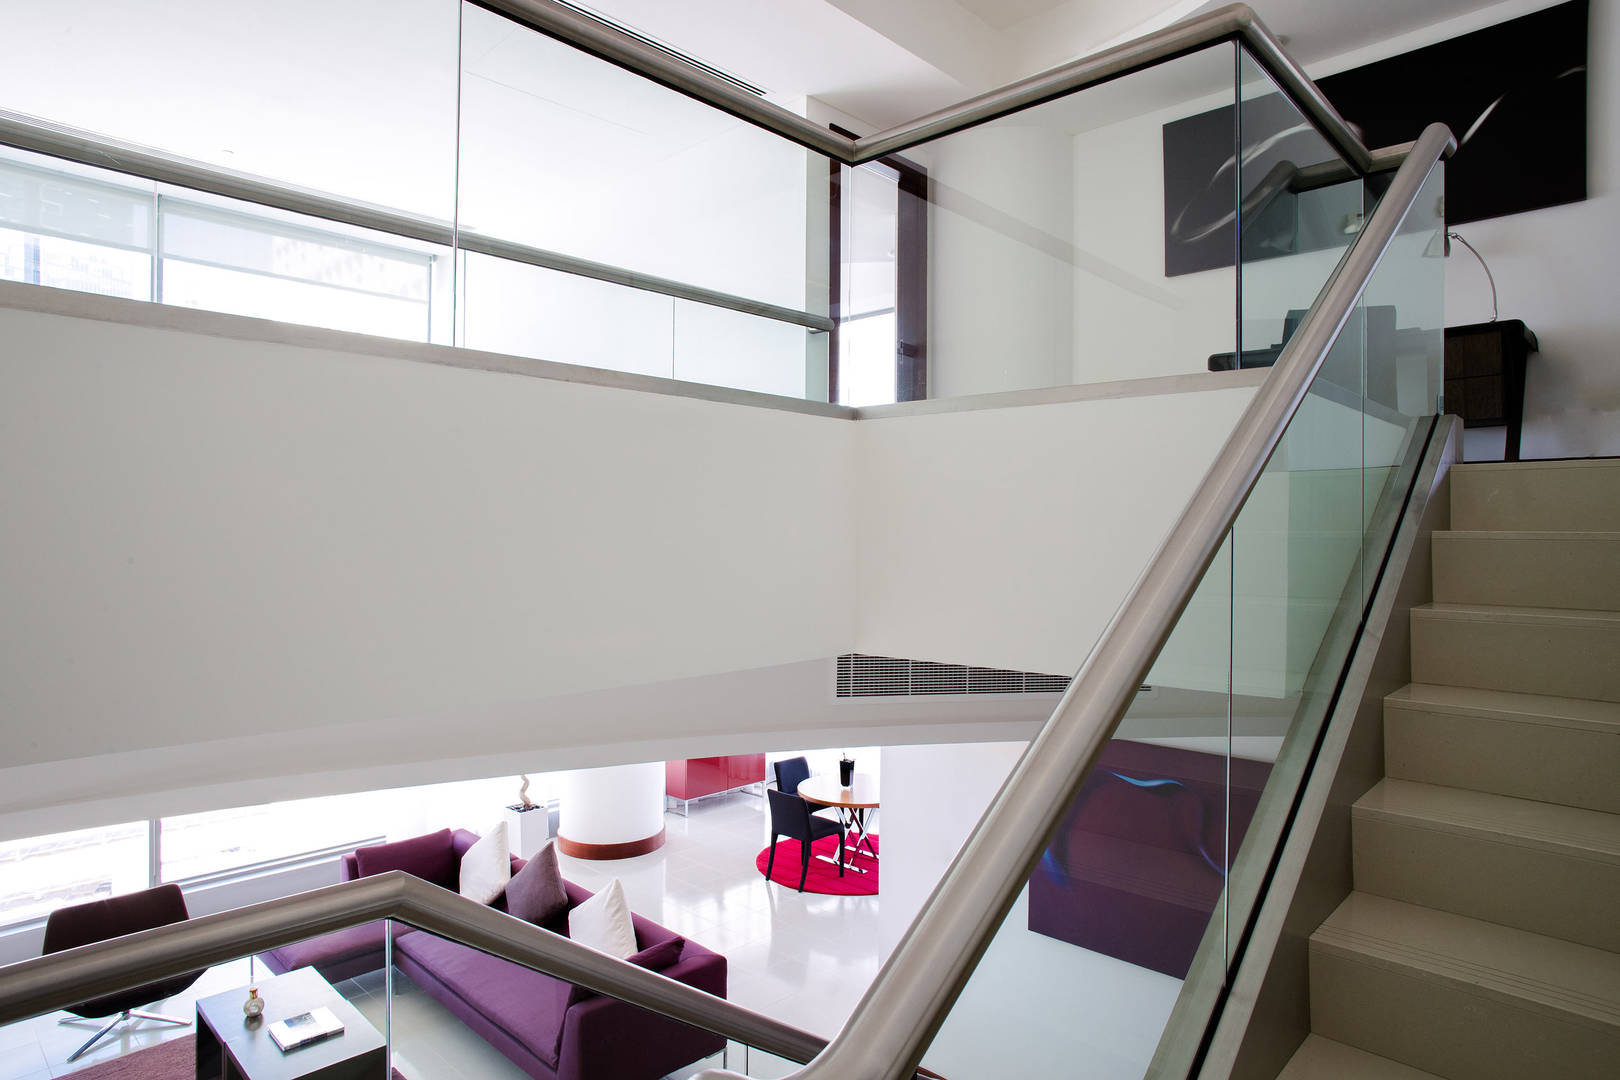 View of the Two Bedroom Duplex Residence staircase